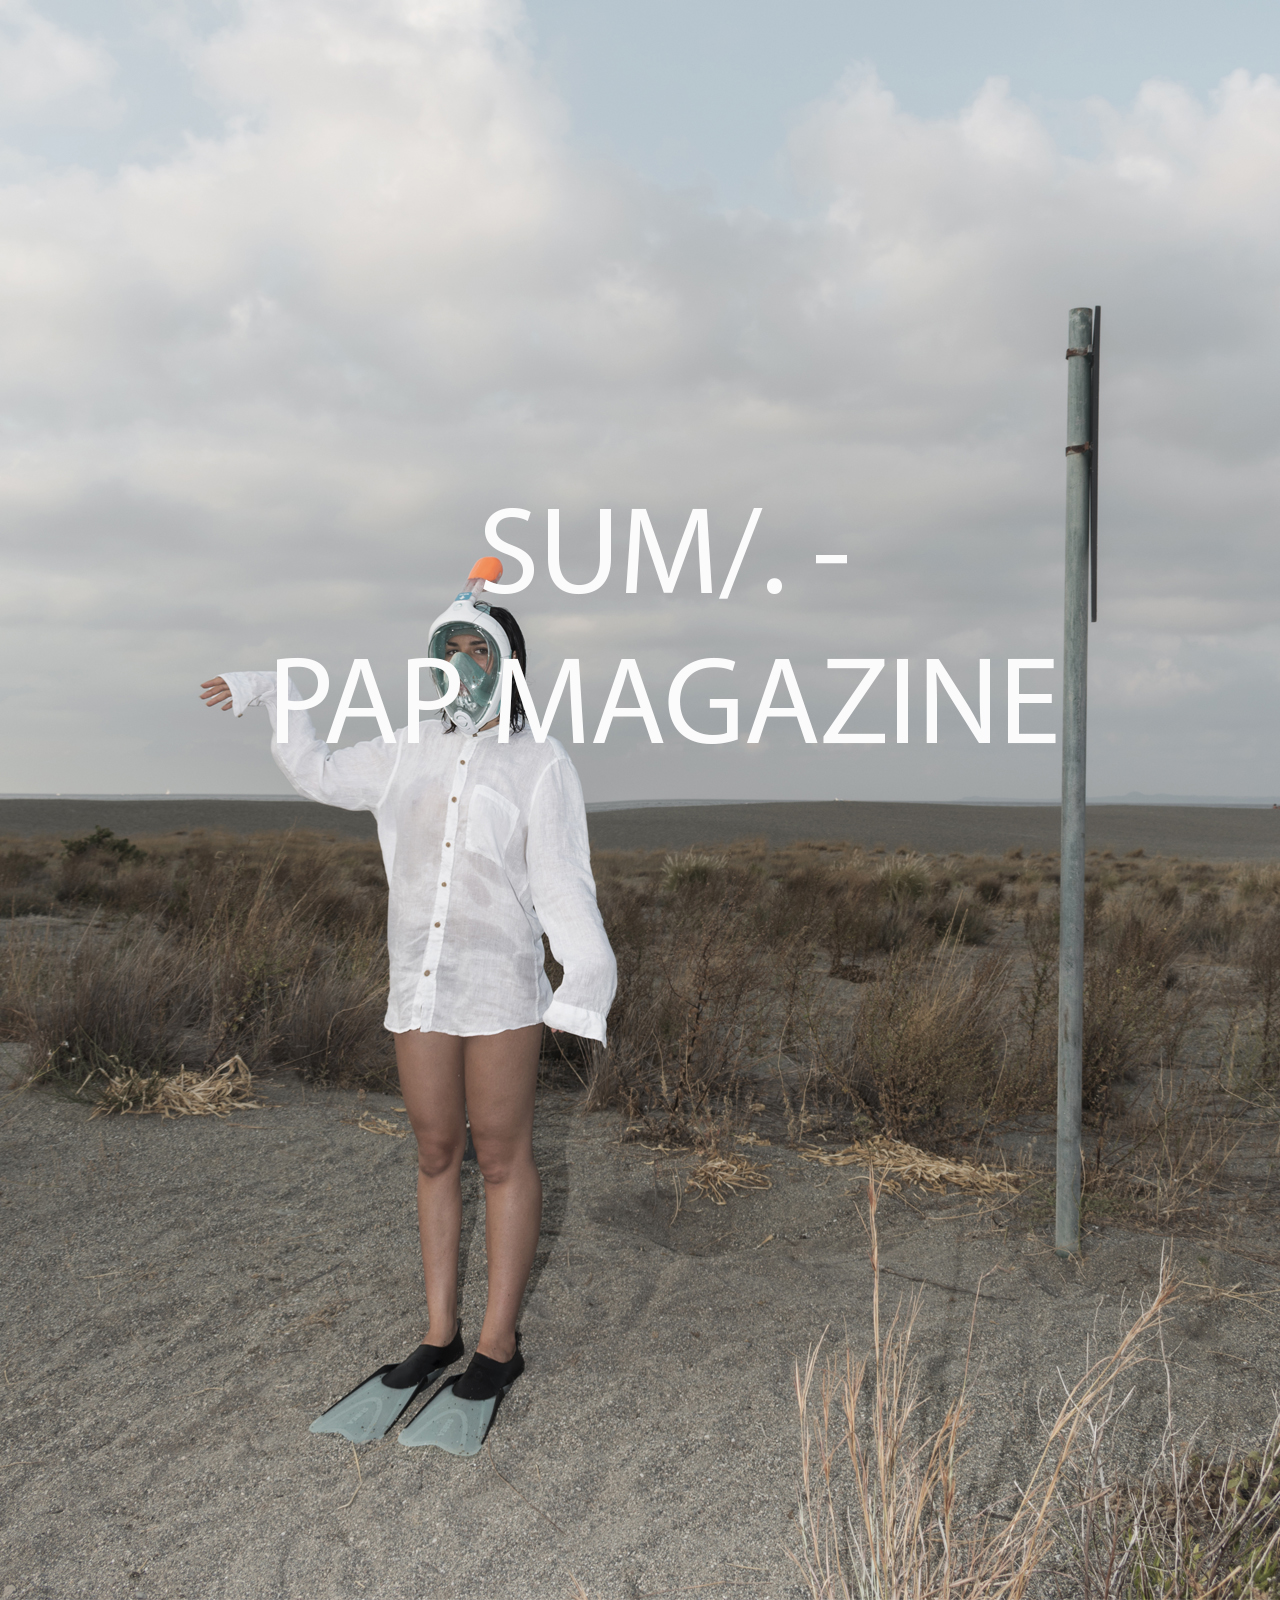 Sum /. by Andrea Reina